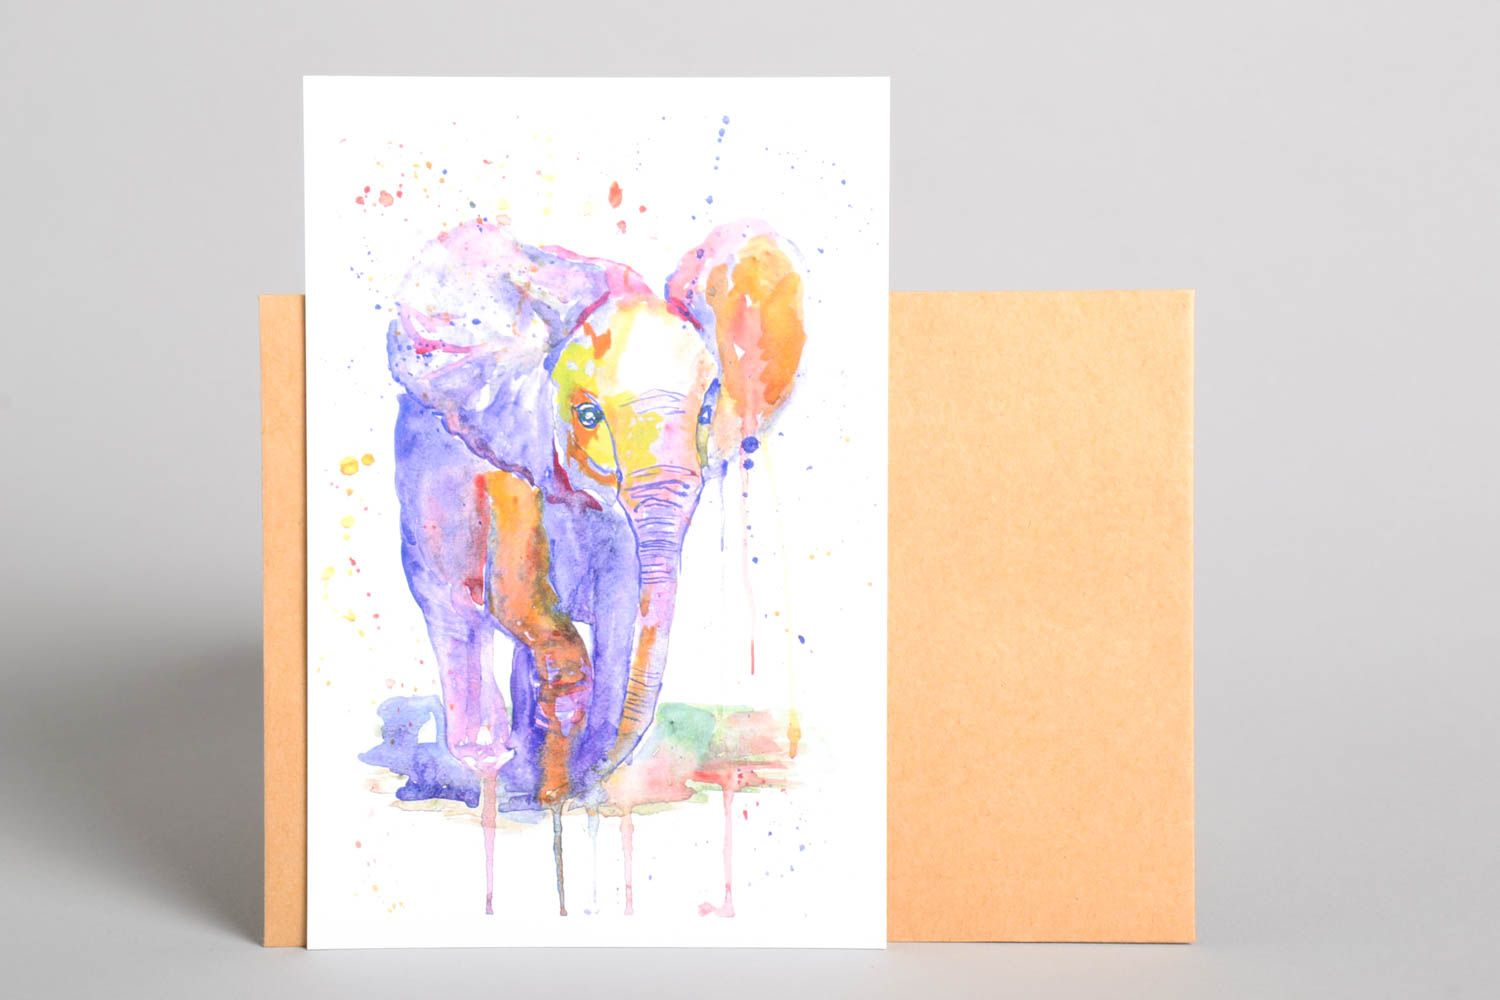 Collectible post cards watercolor post card handmade post card gift for friend photo 2